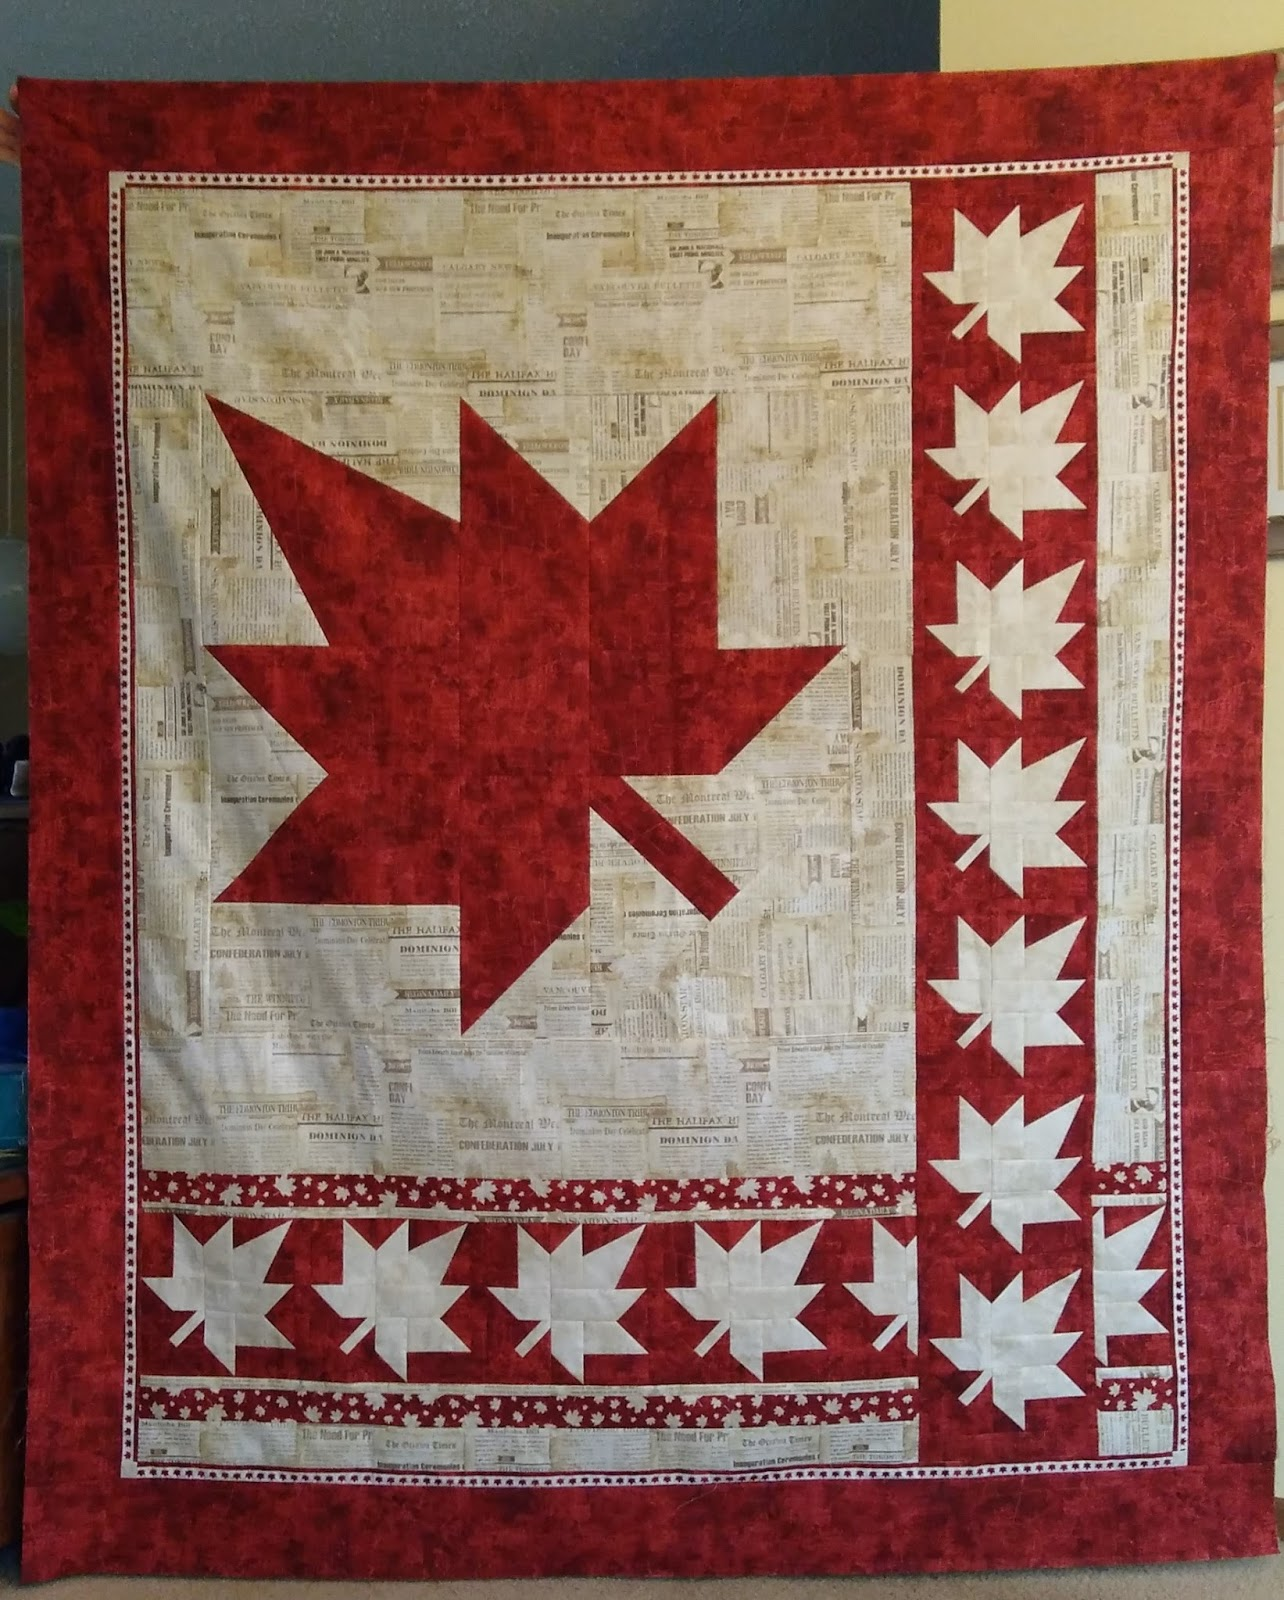 Canuck Quilter: Canada 150 Quilt: It's your turn! : quilt canada - Adamdwight.com